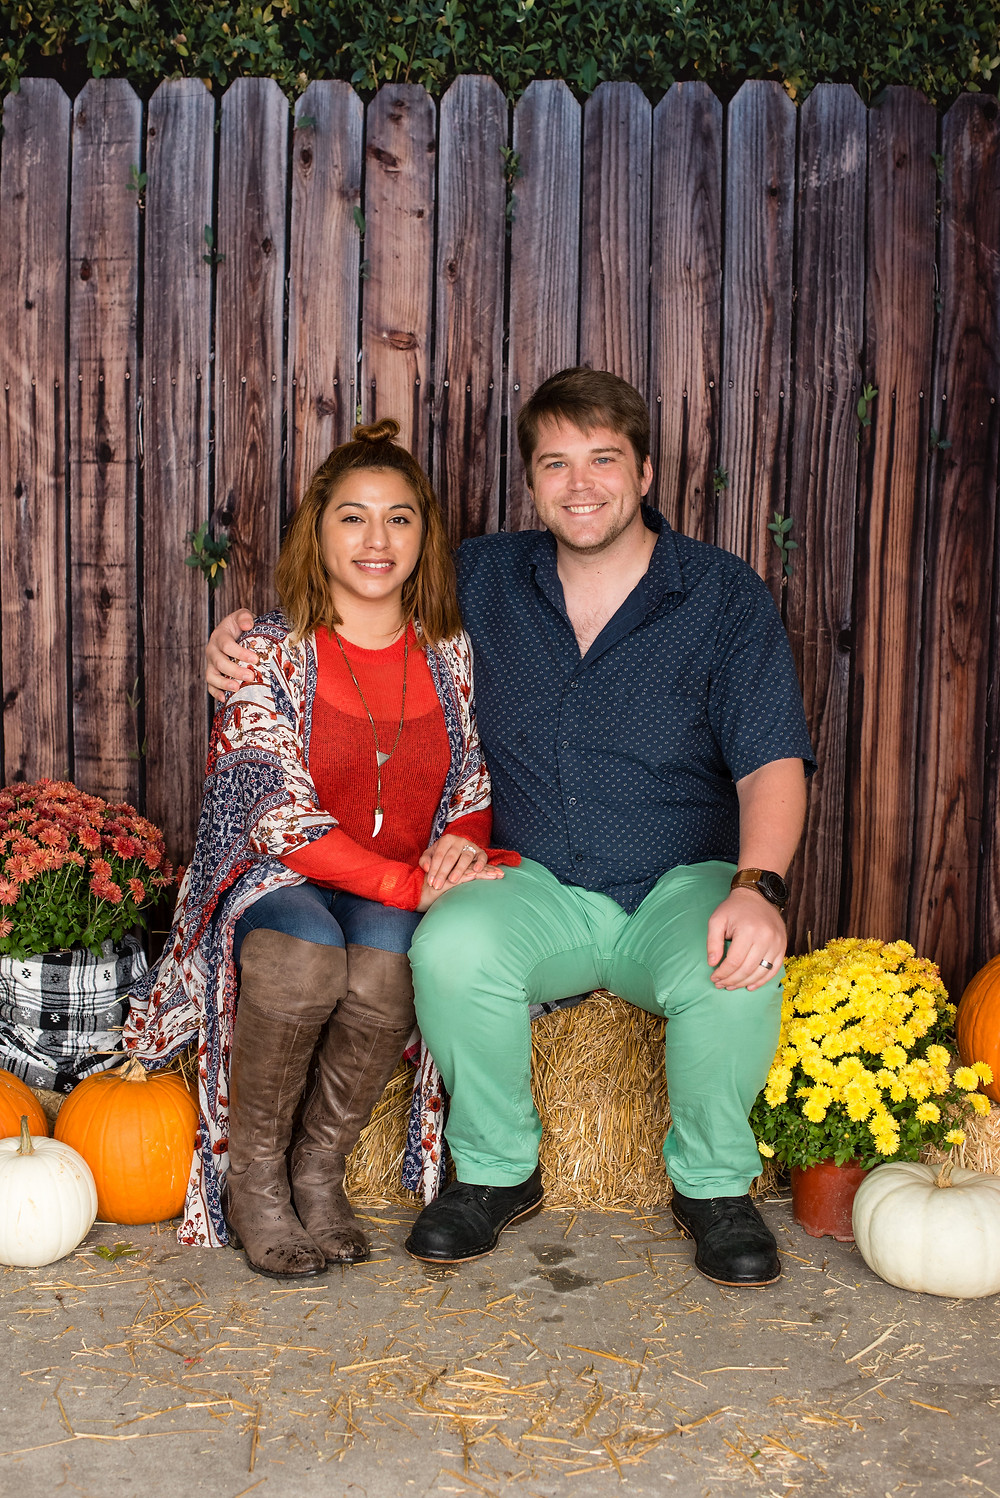 Couple sitting on hay bales surrounded by orange pumpkins and yellow flowers